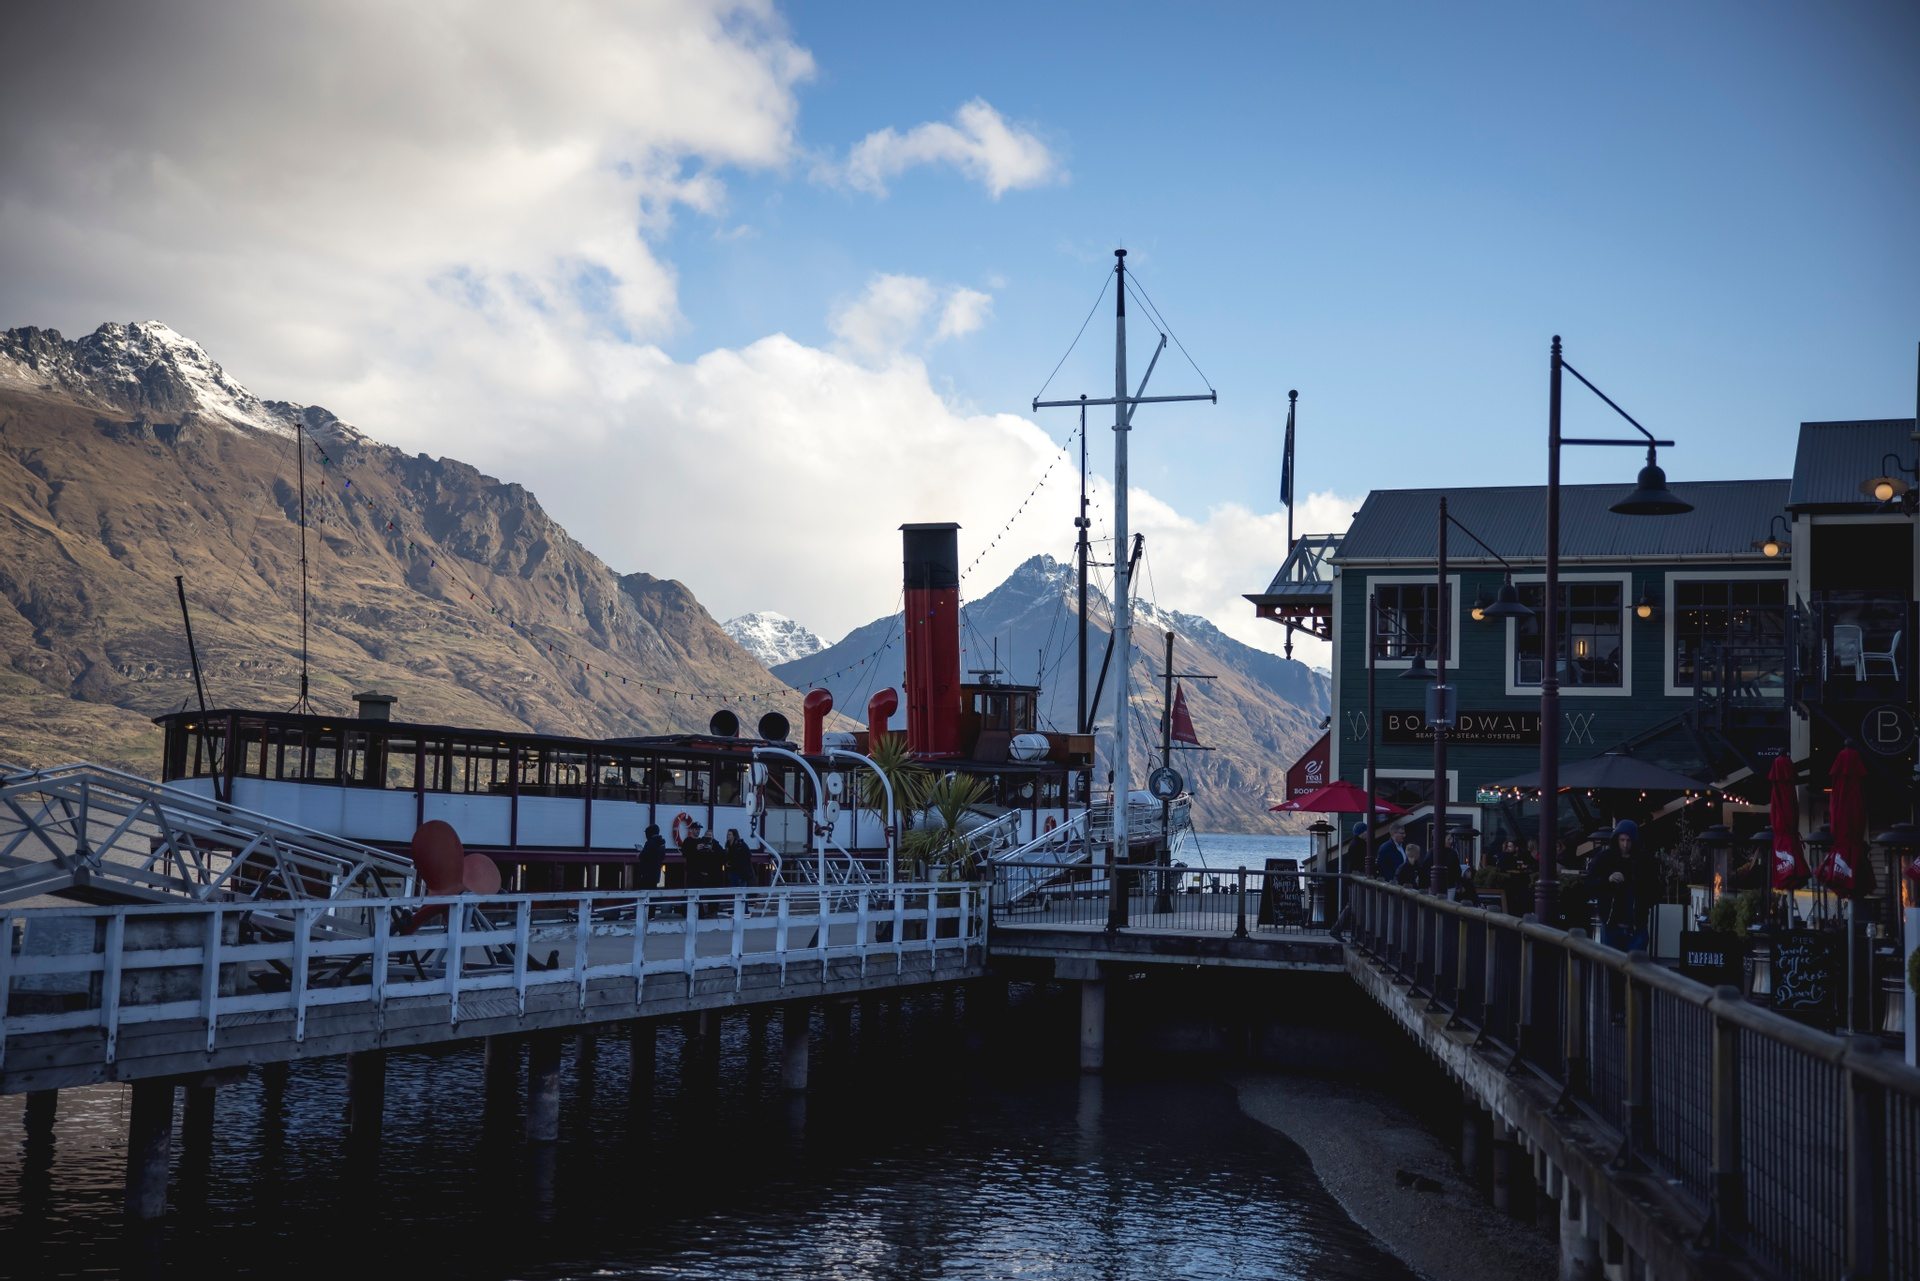 The historic TSS Earnslaw at dock in Queenstown. Image courtesy TNZ and Miles Holden